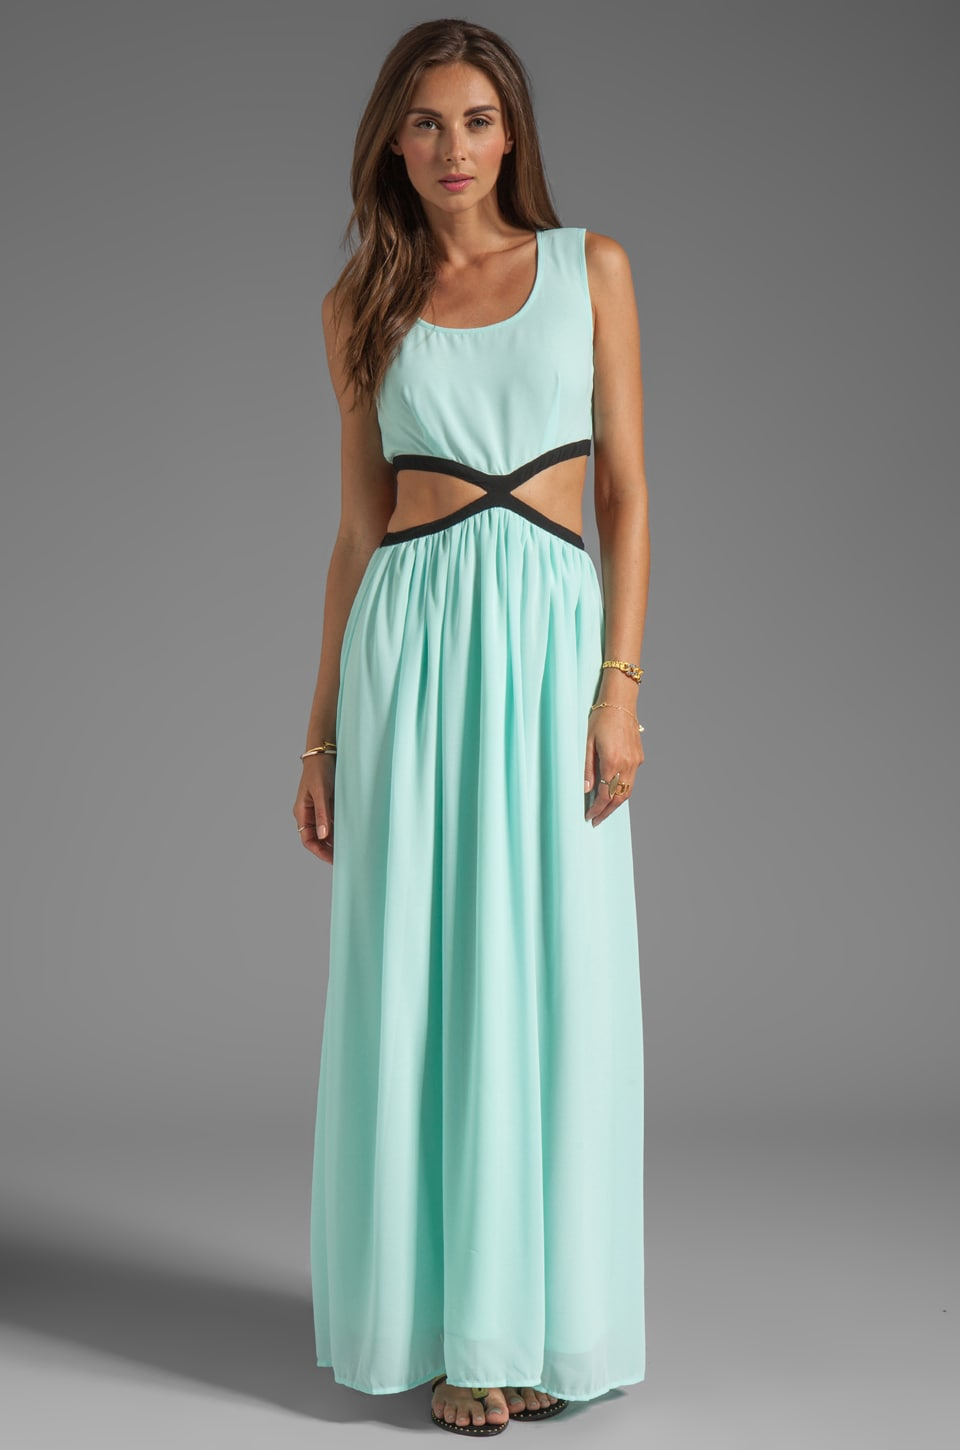 BLAQUE LABEL Cut Out Dress in Aqua